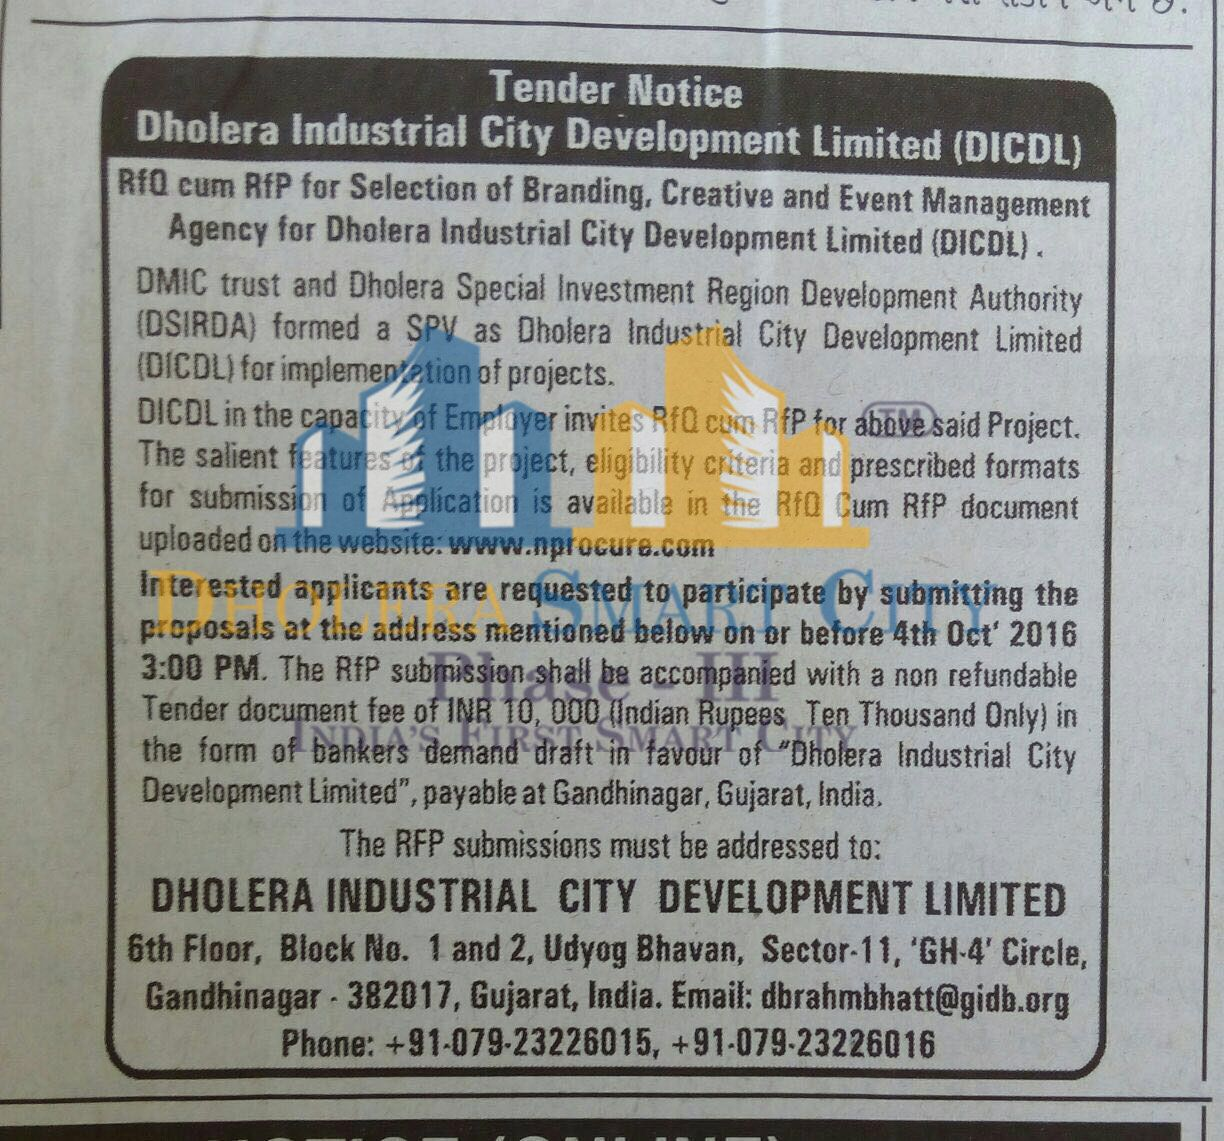 Dholera Industrial City Development Limited (DICDL)